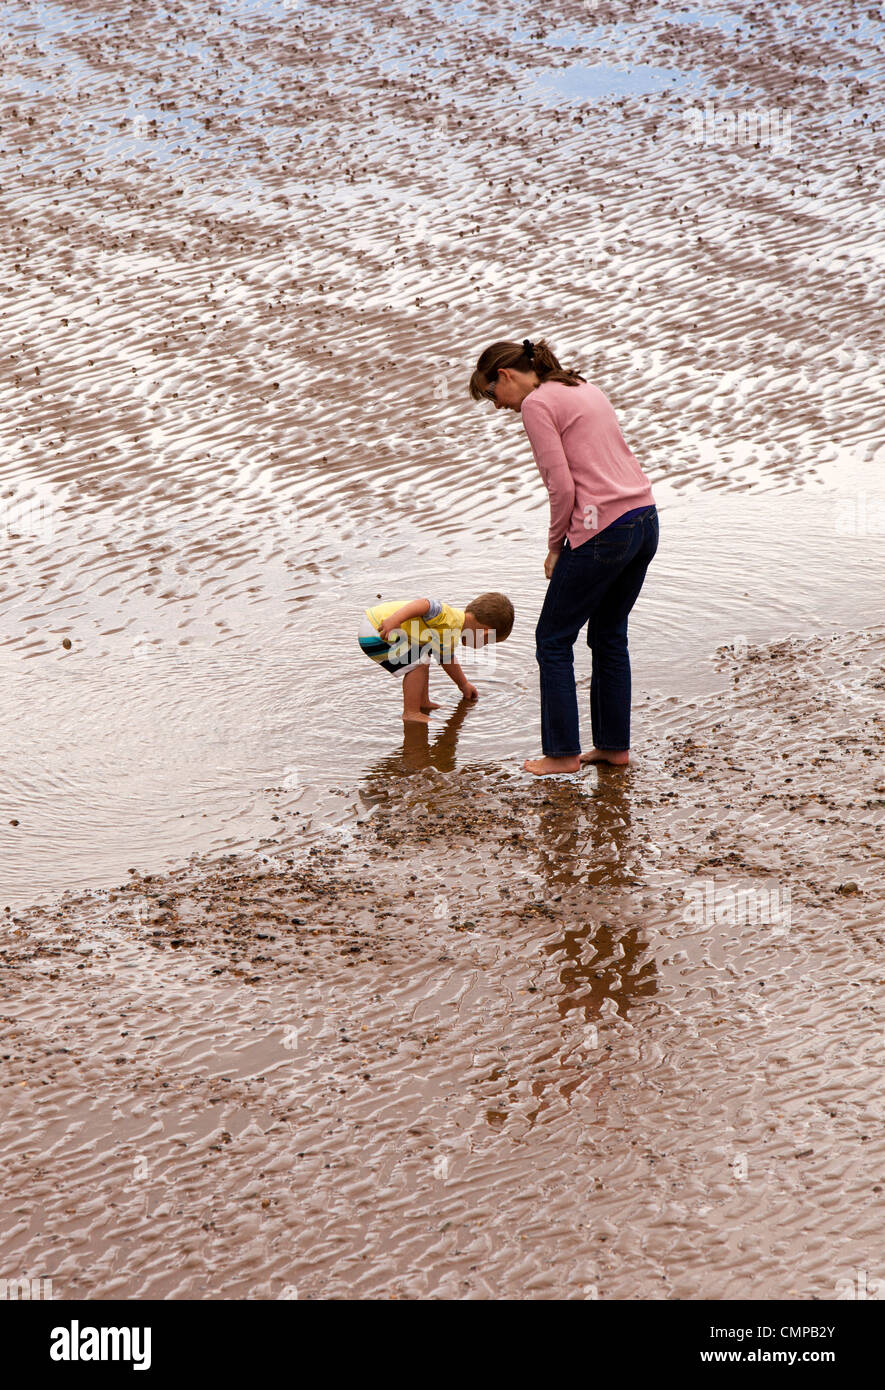 UK, England, Lincolnshire, Cleethorpes, mother and child playing in shallows at low tide Stock Photo